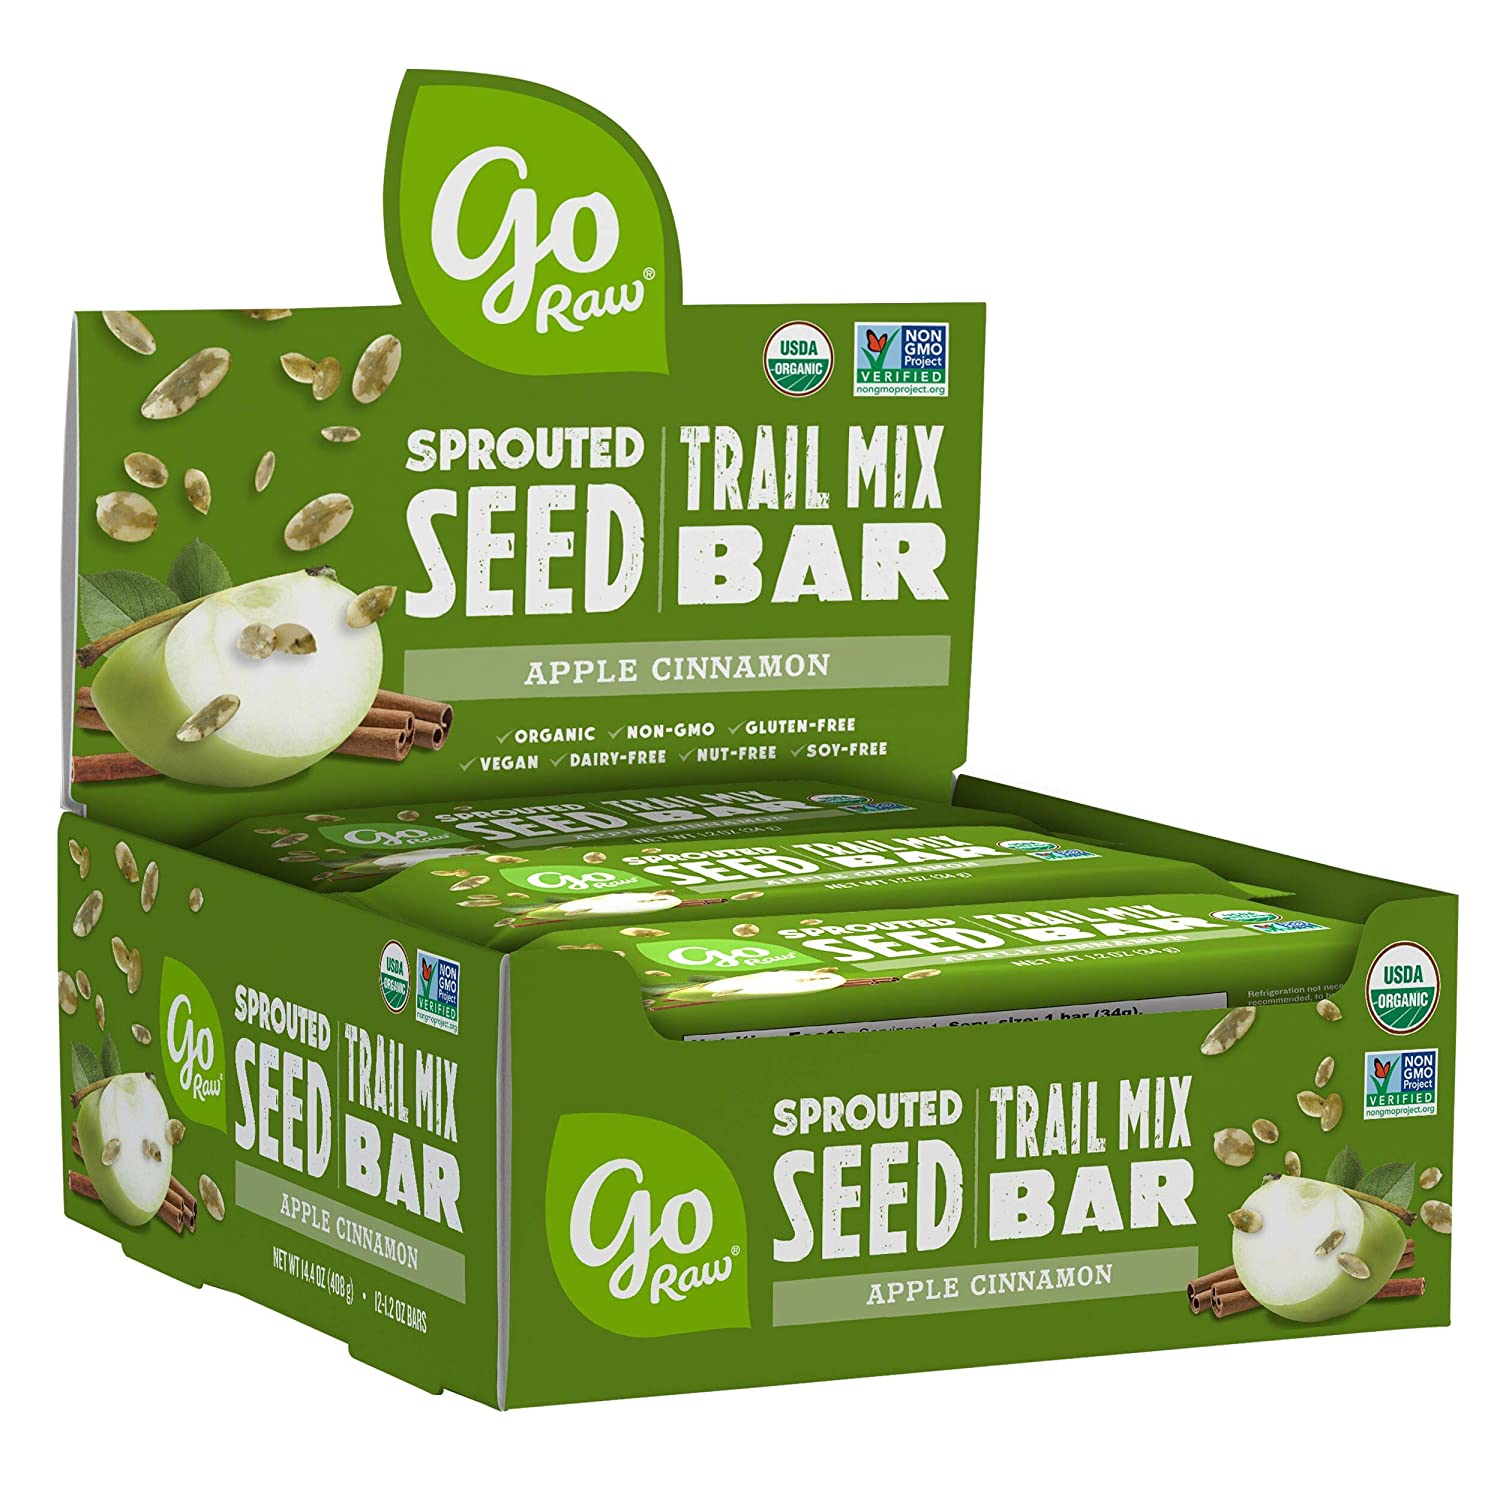 Go Raw Sprouted Seed Trail Mix Bars Snack Gluten Free, Paleo, Vegan, Natural, Organic Nut Free Apple Cinnamon, 12 Ounce (Pack of 12)